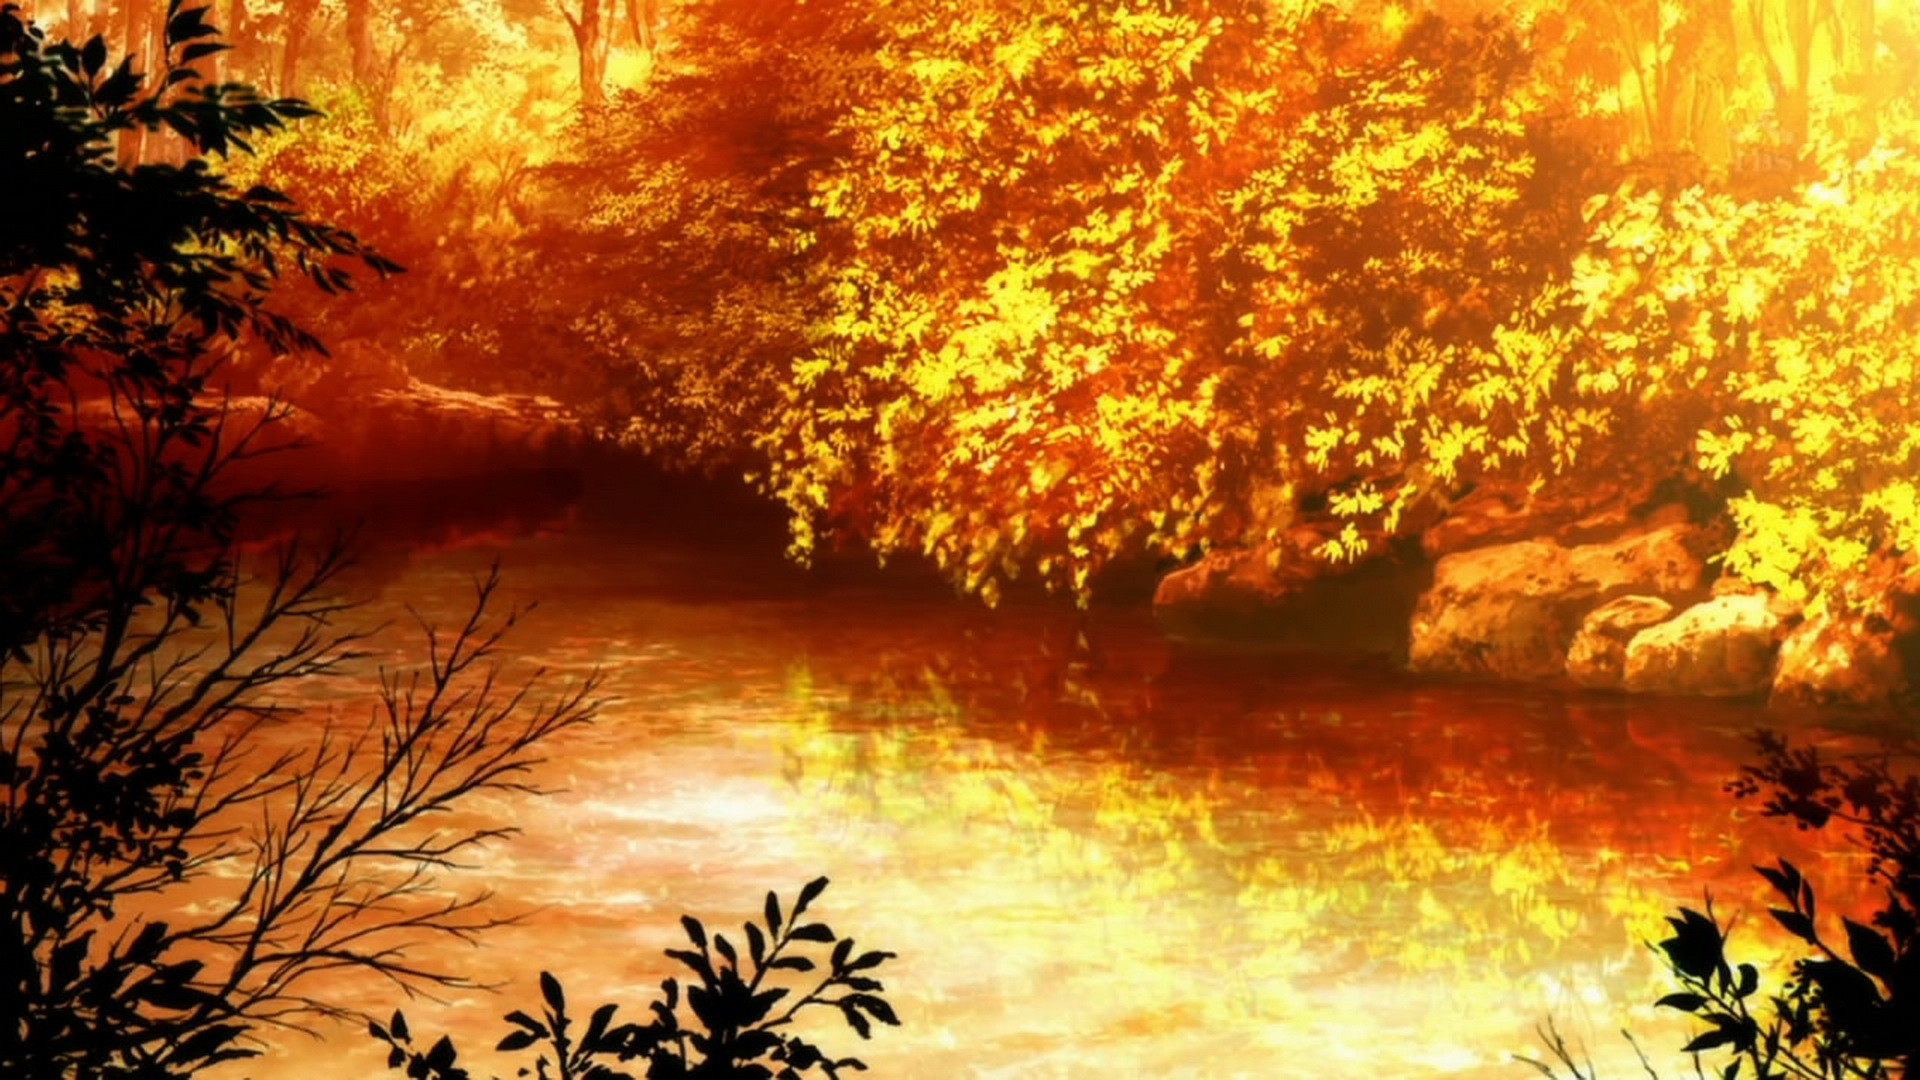 Res: 1920x1080, 24 Creative Fall Anime Wallpapers in High Quality, Petro Cotesford